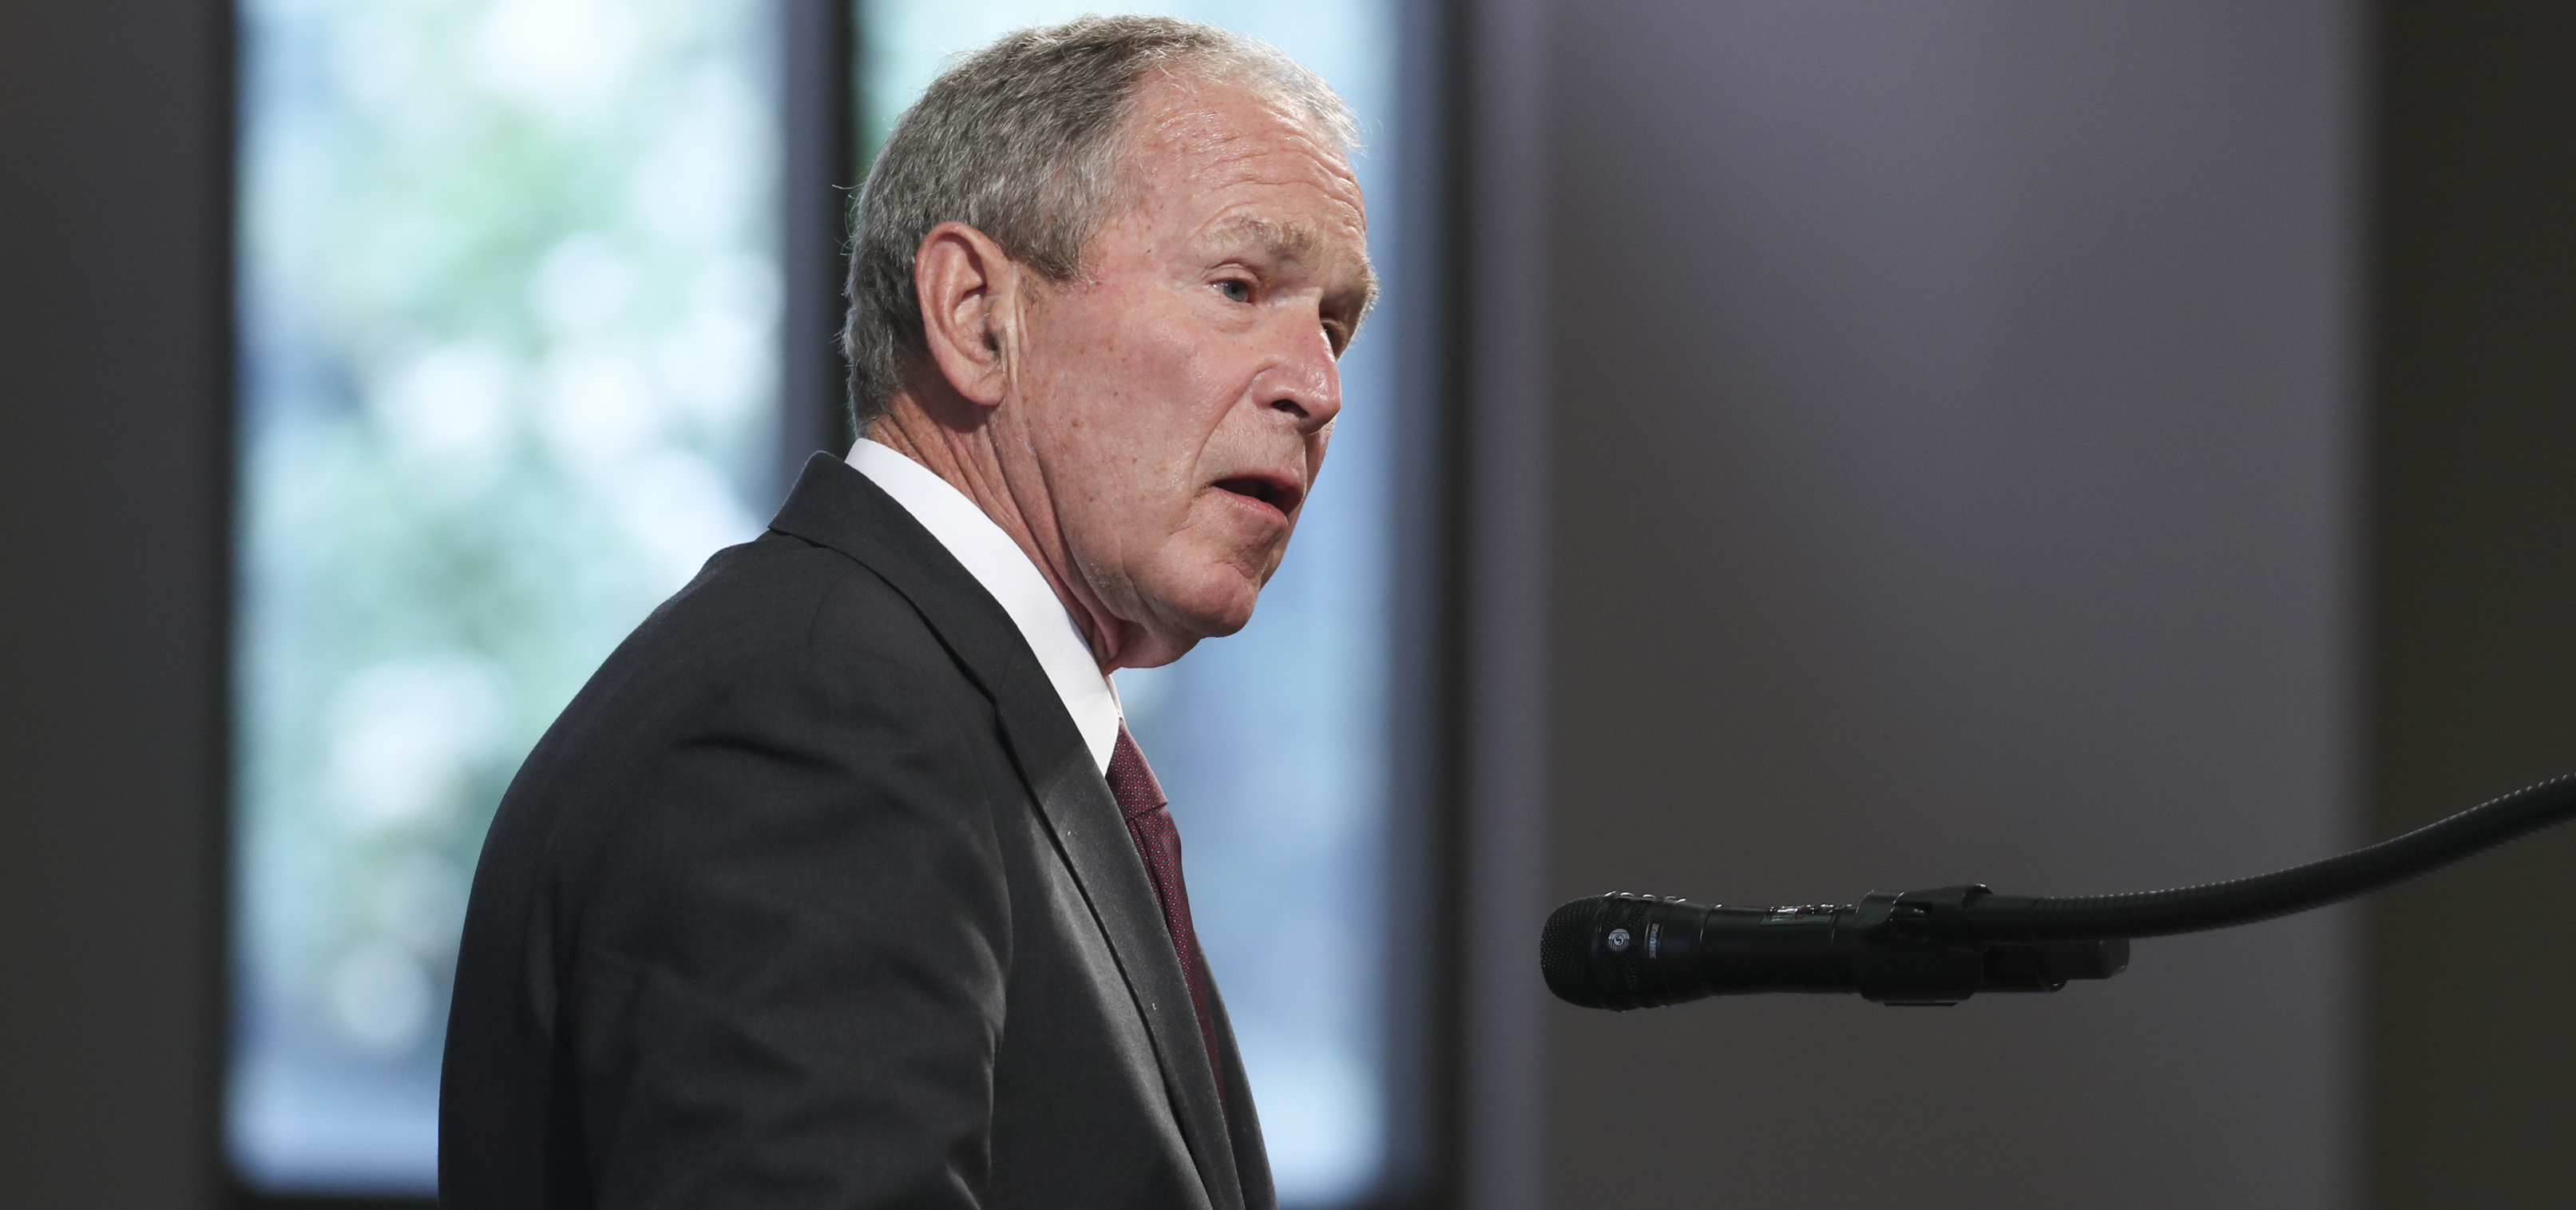 George W. Bush To Publish Book on Immigrants